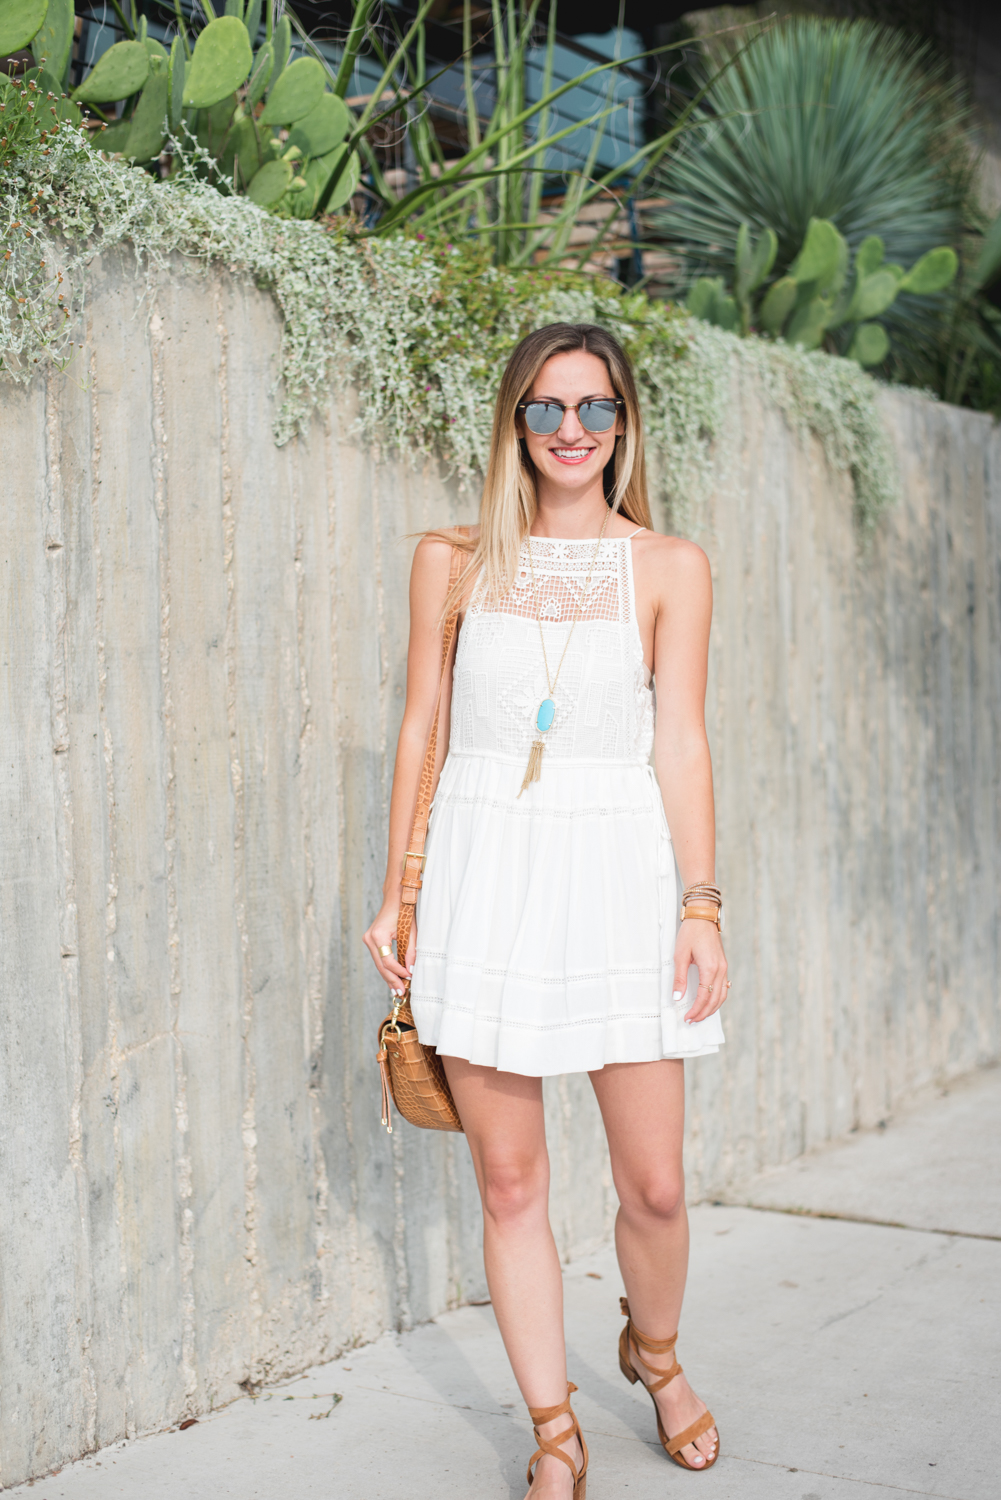 livvyland-blog-olivia-watson-austin-texas-fashion-blogger-free-people-flowy-white-high-neck-crochet-dress-tassel-south-lamar-kathryn-frazer-photography-boho-festival-outfit-4